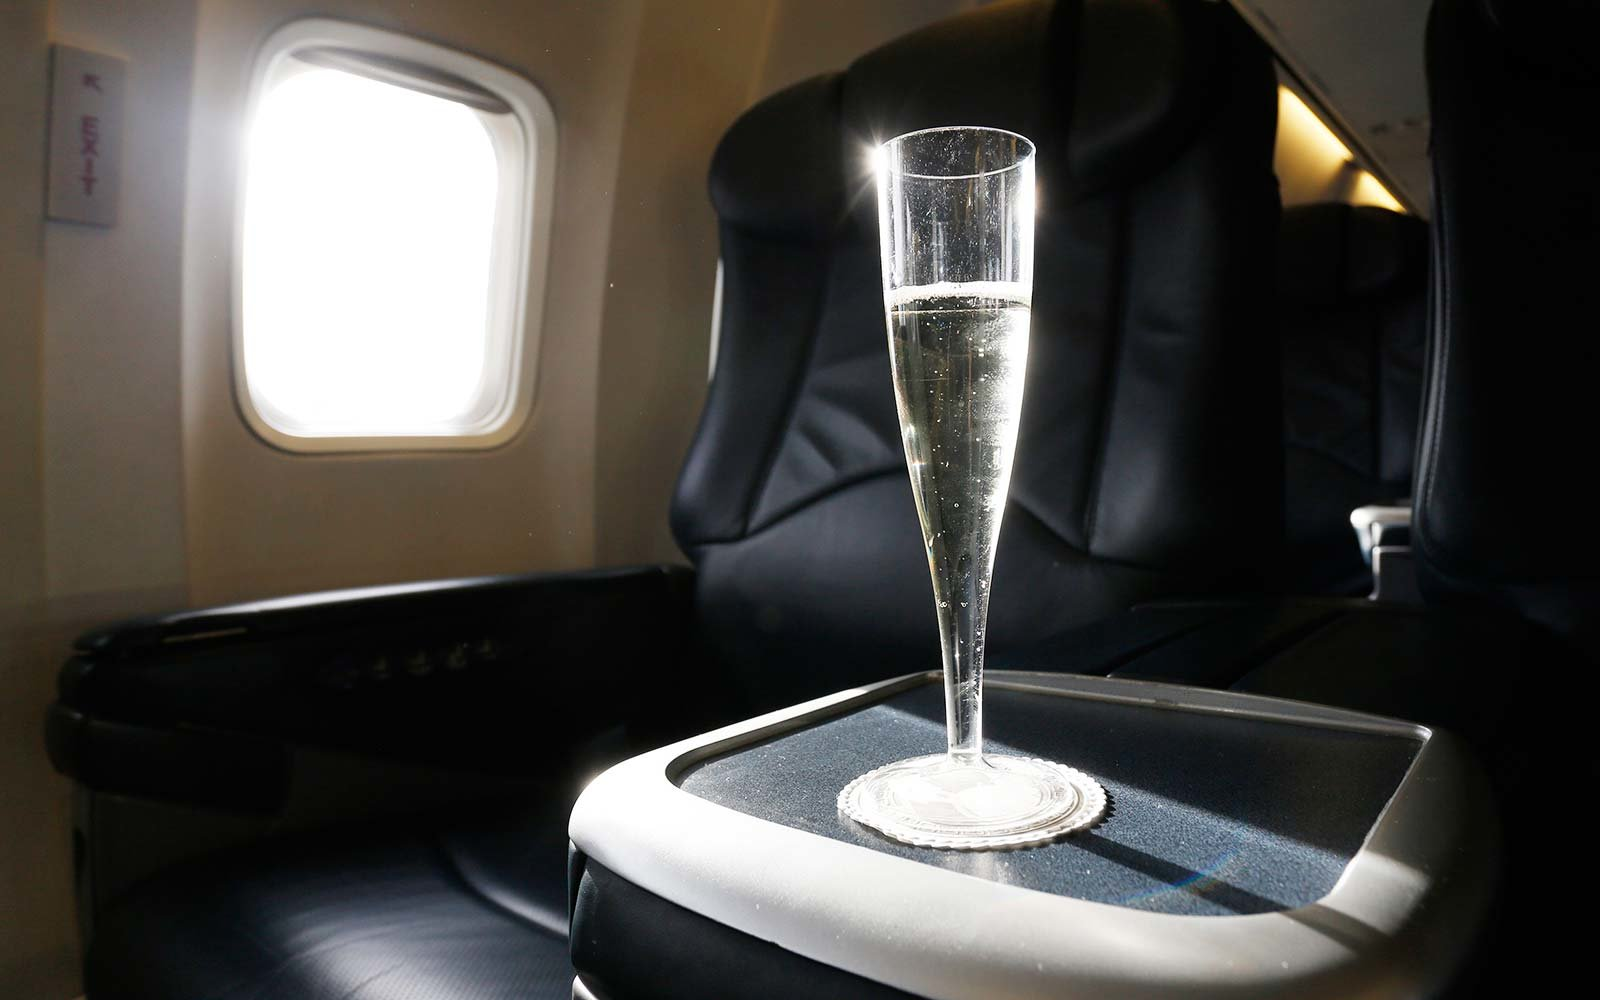 Man sues airline for not serving Champagne